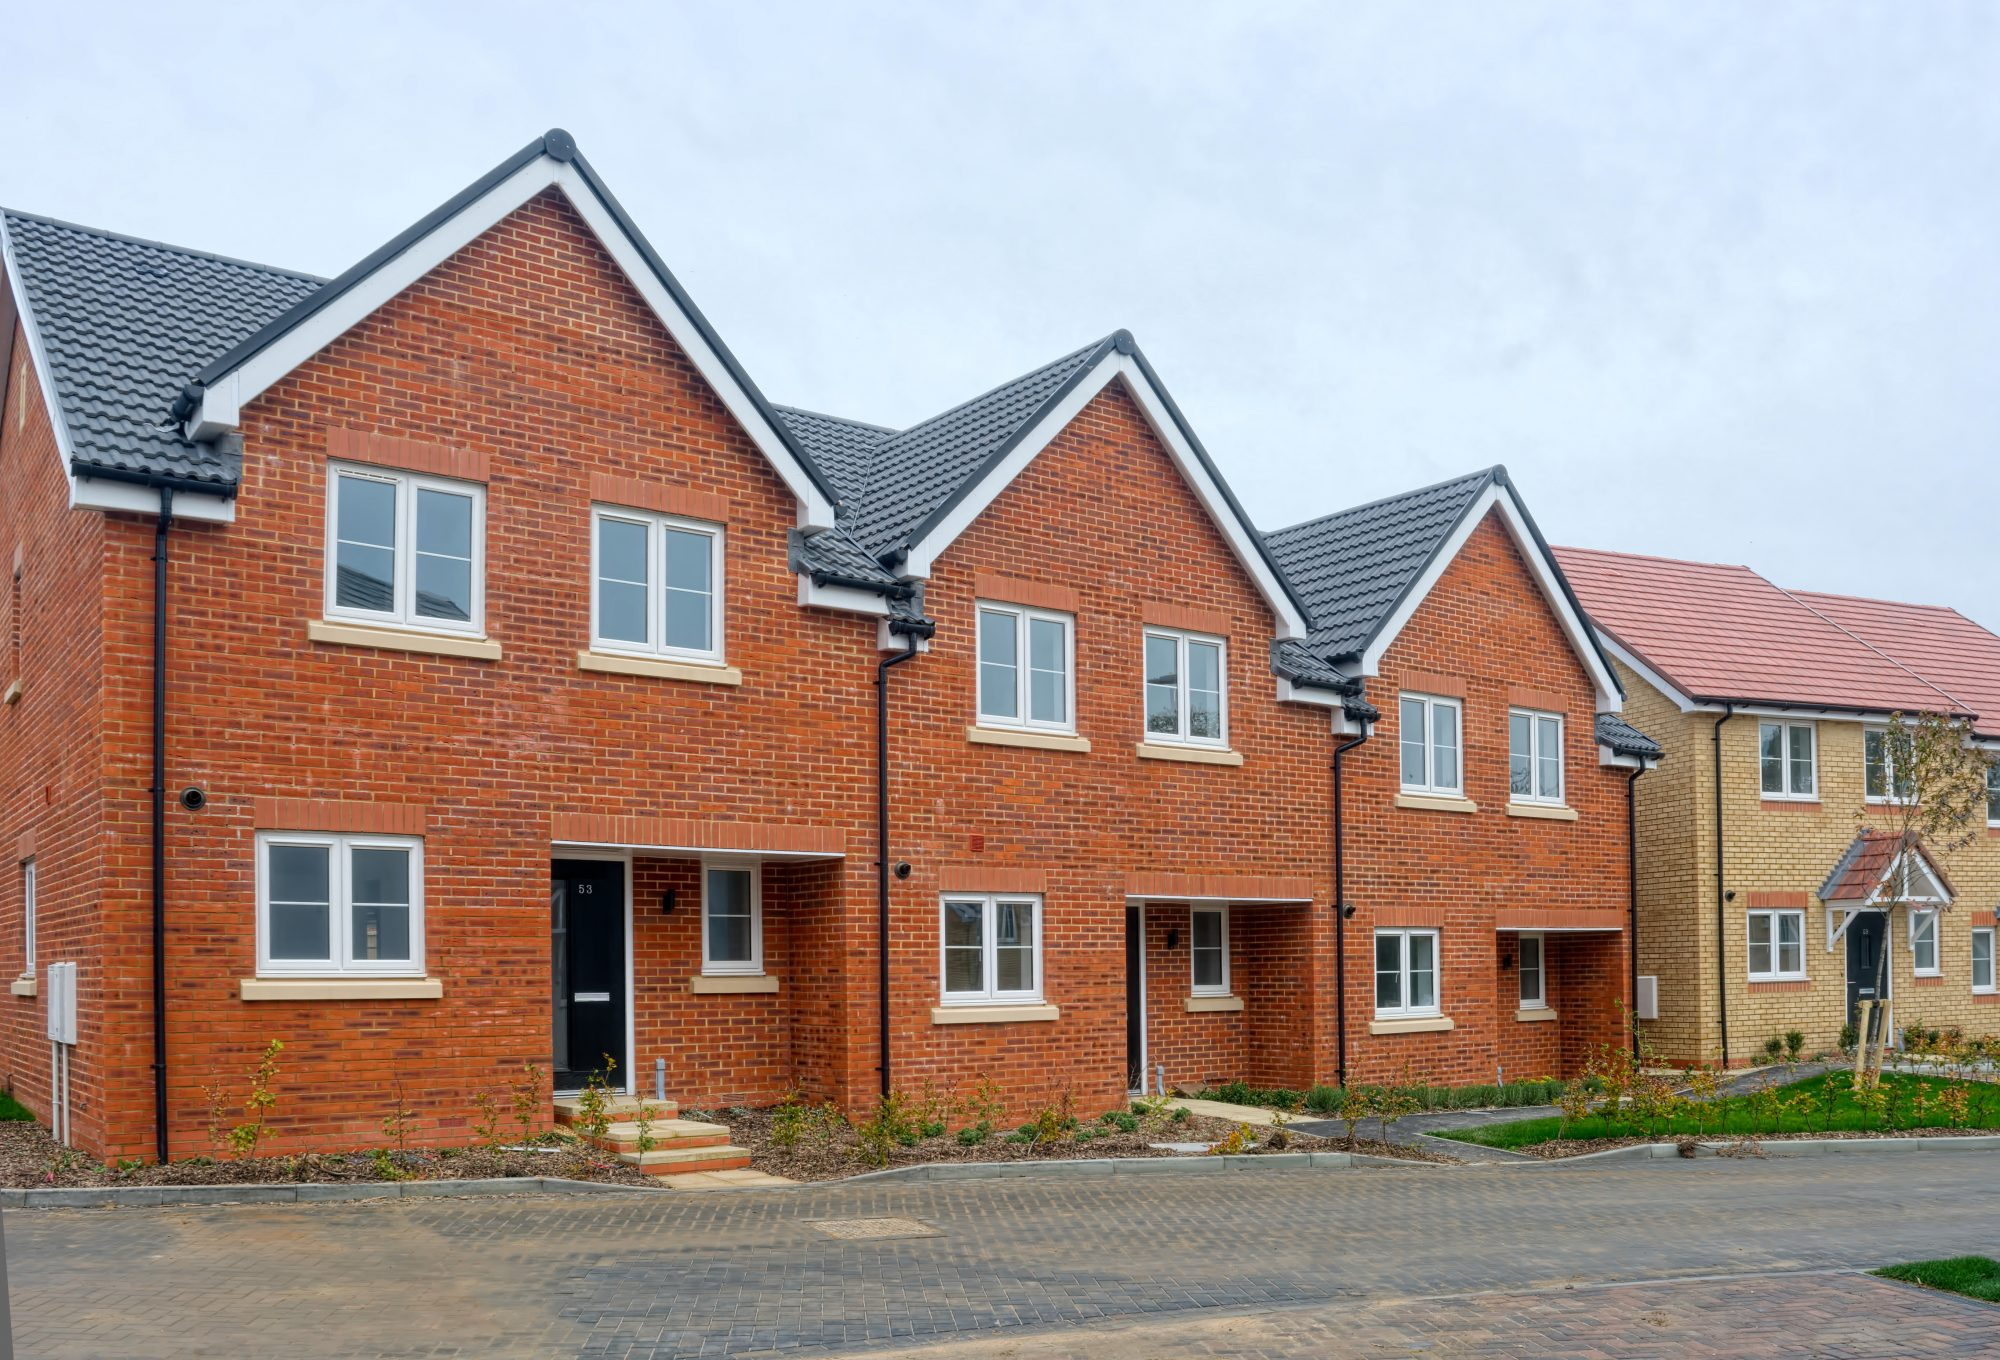 2021 standards for UK housebuilders launched by NHBC